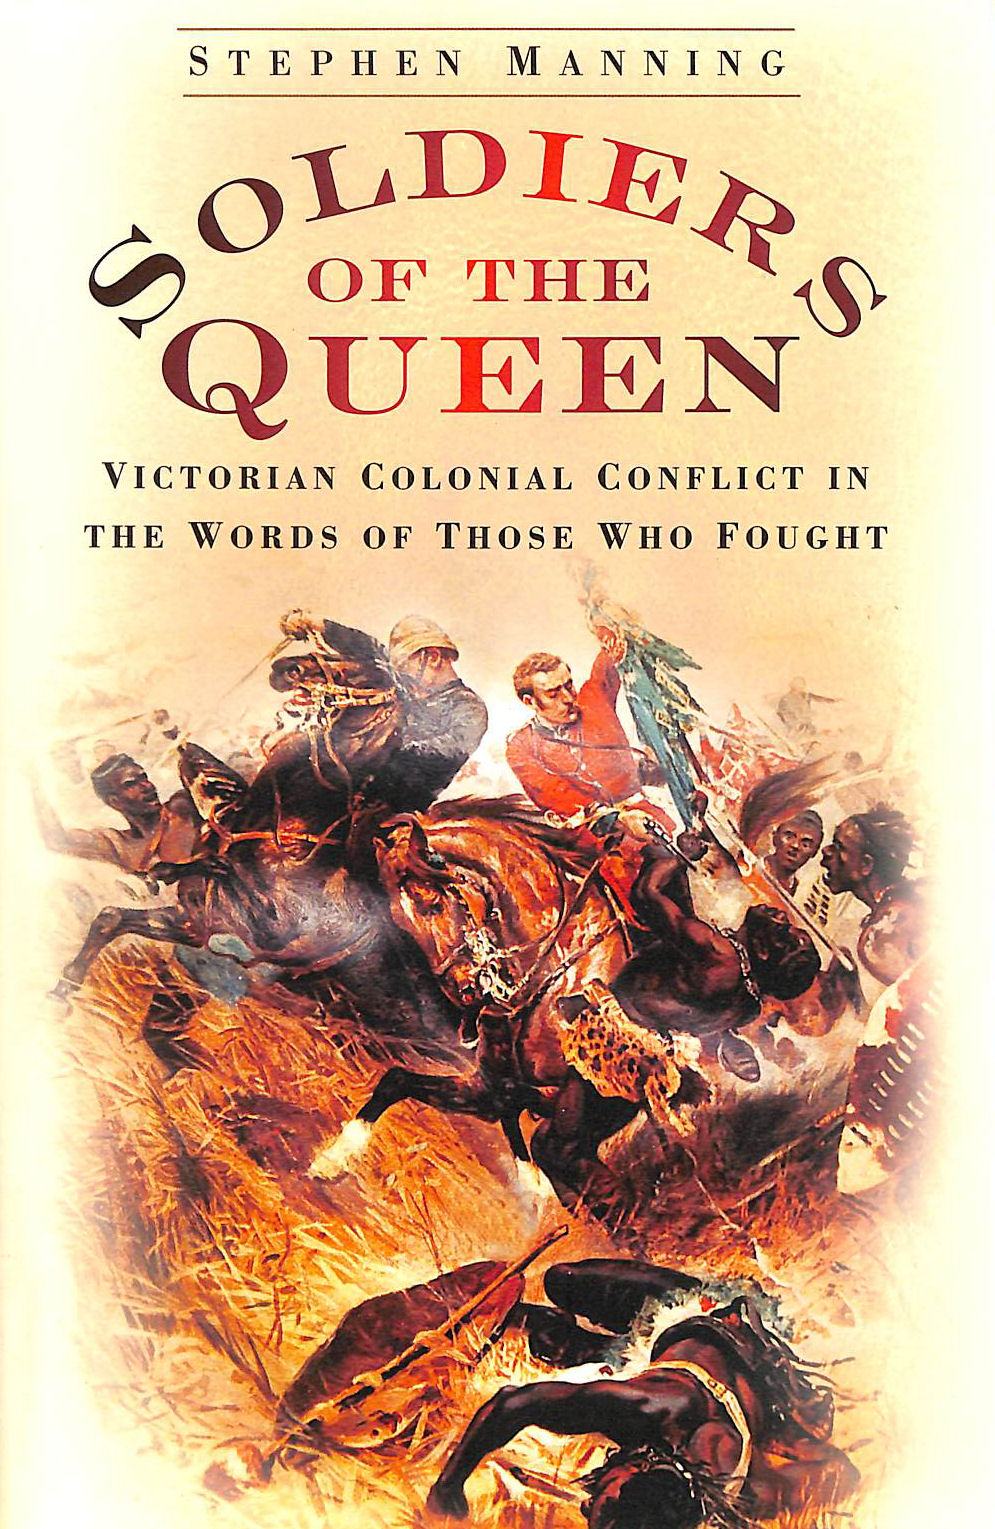 Image for Soldiers of the Queen: Victorian Colonial Conflict in the Words of those who Fought